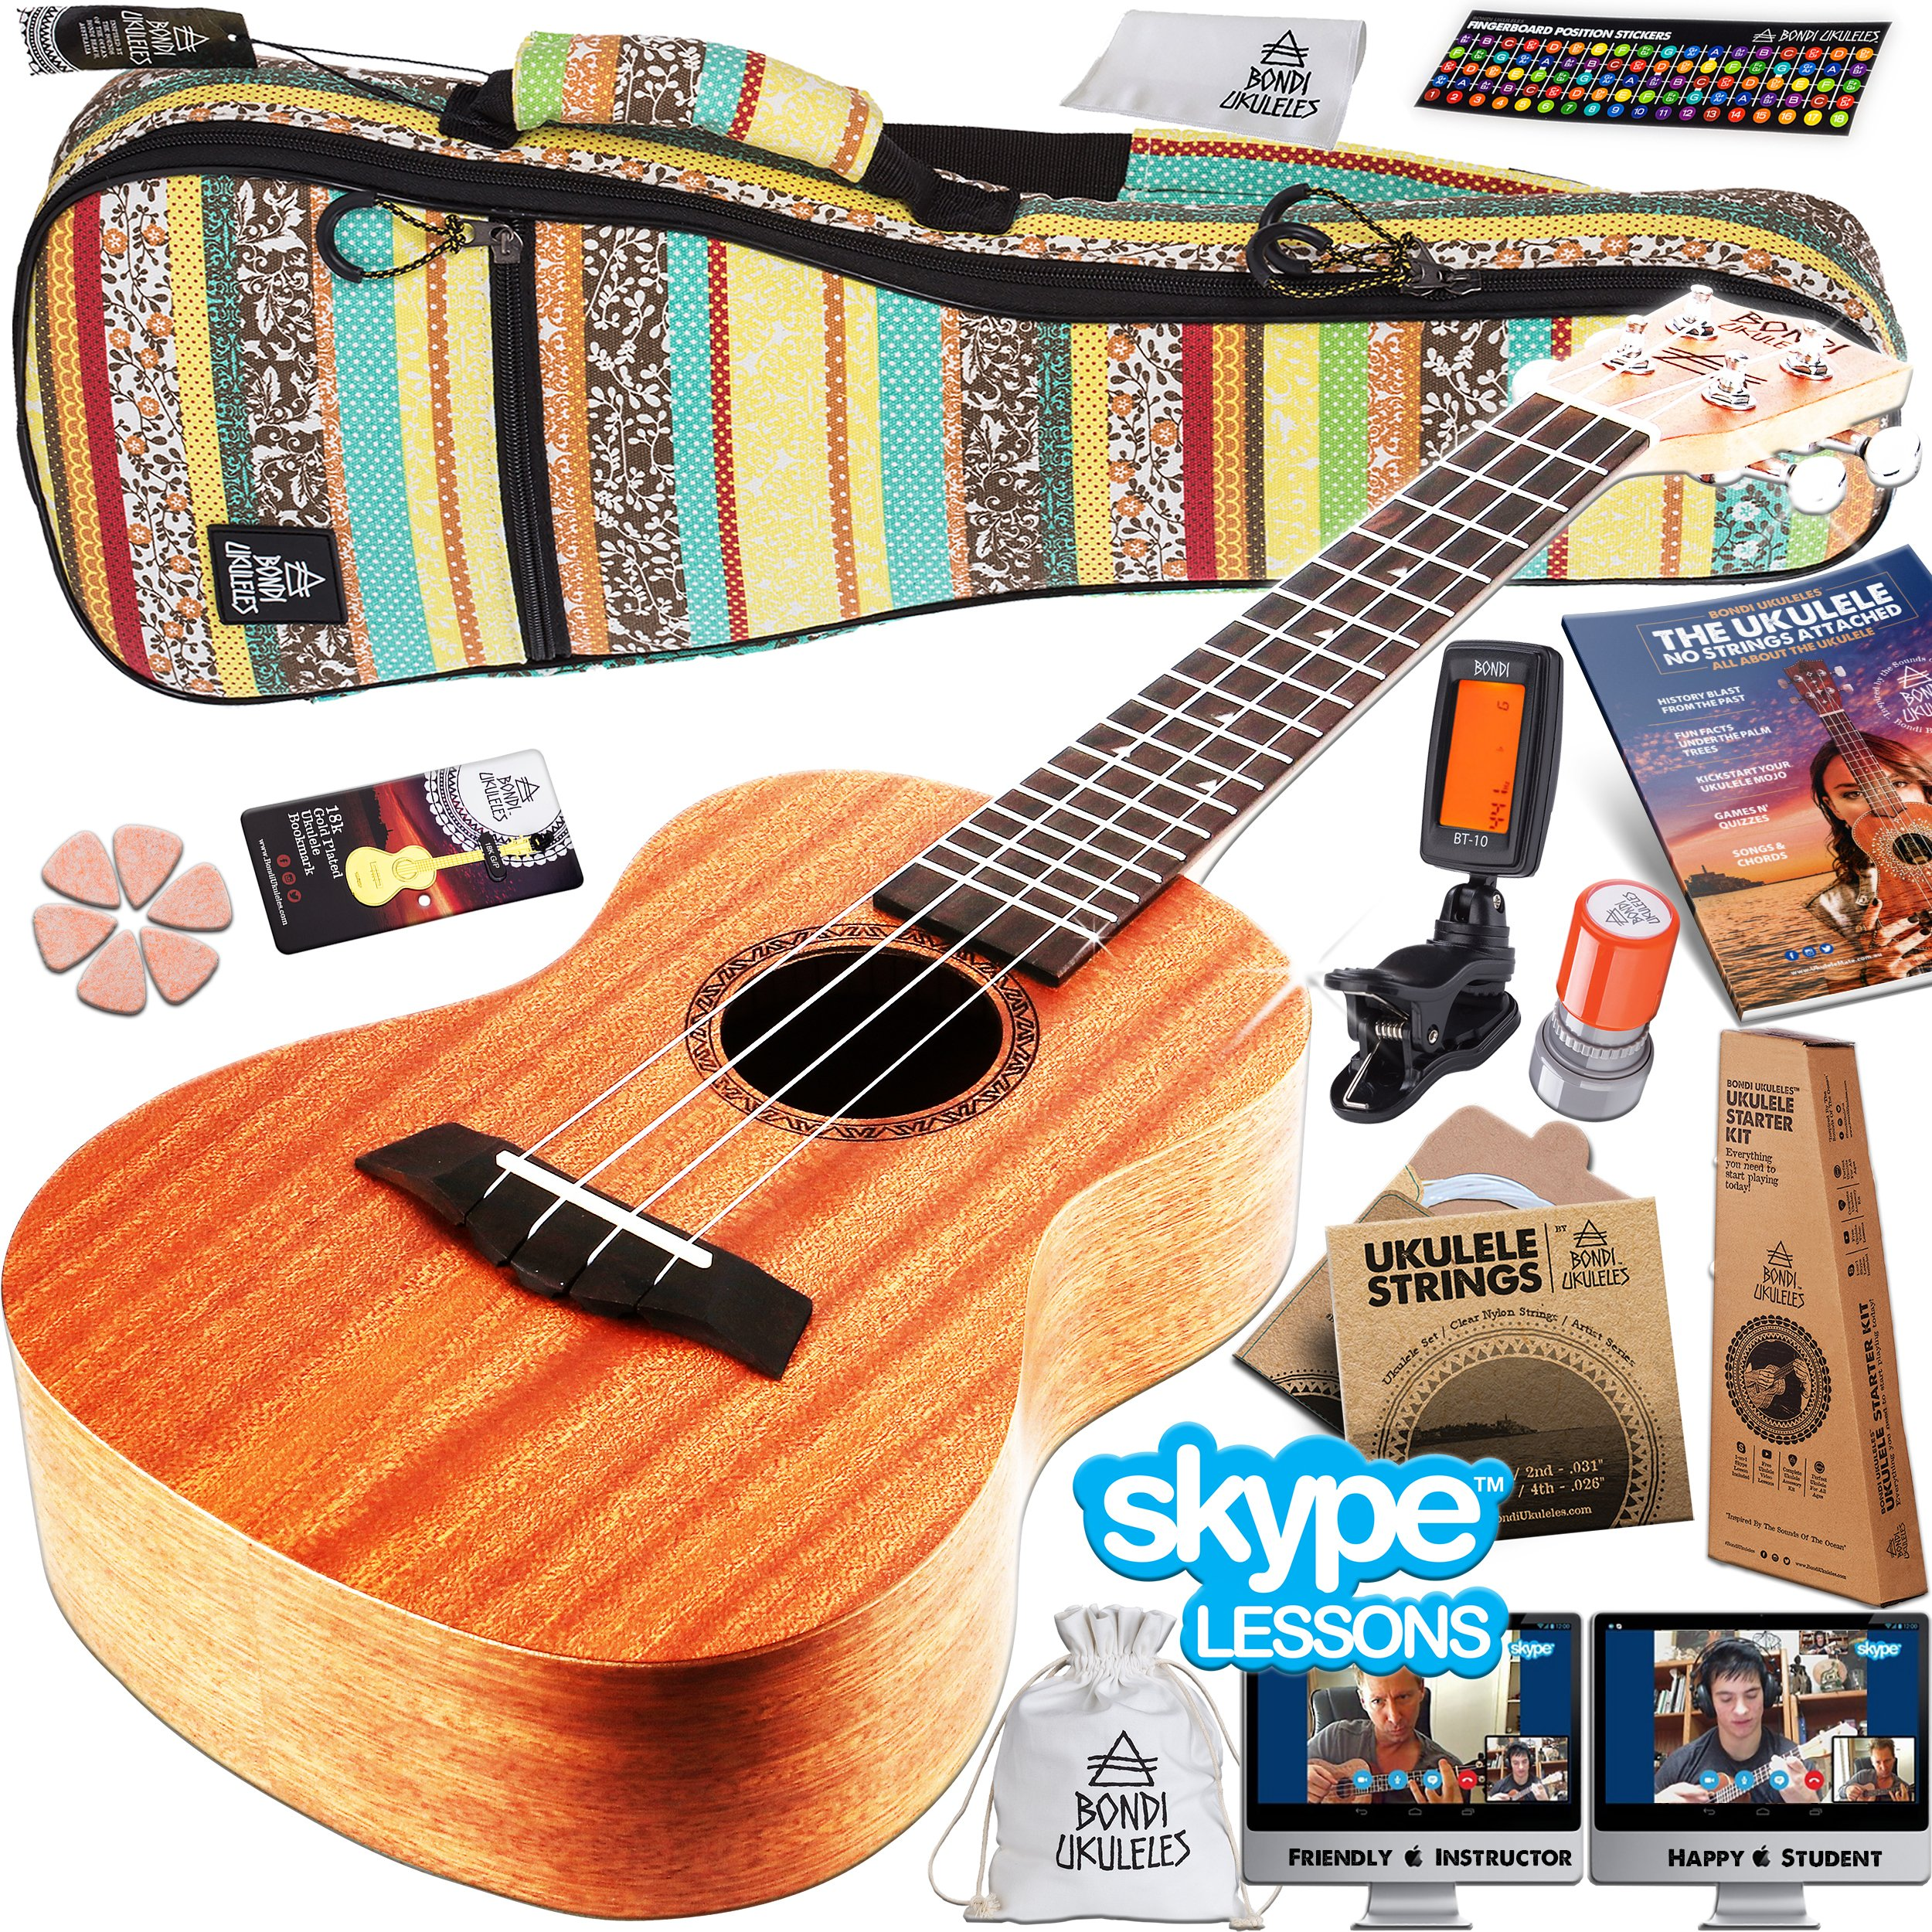 Ukulele Starter Kit (16-Piece-Set) Acclaimed Brand get Official SKYPE Lesson, Videos, Compression Case, No-Scratch Felt Picks, Clip Tuner, Chord Stamp, Poster, Strap, Strings & MORE (Amazon Exclusive)